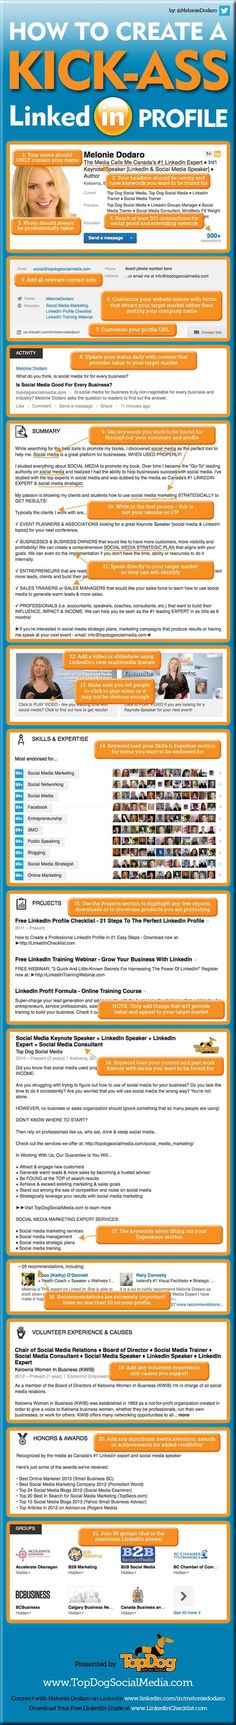 Very detailed guide for us to build a effective and optimal #LinkedIn profile. Must-read!